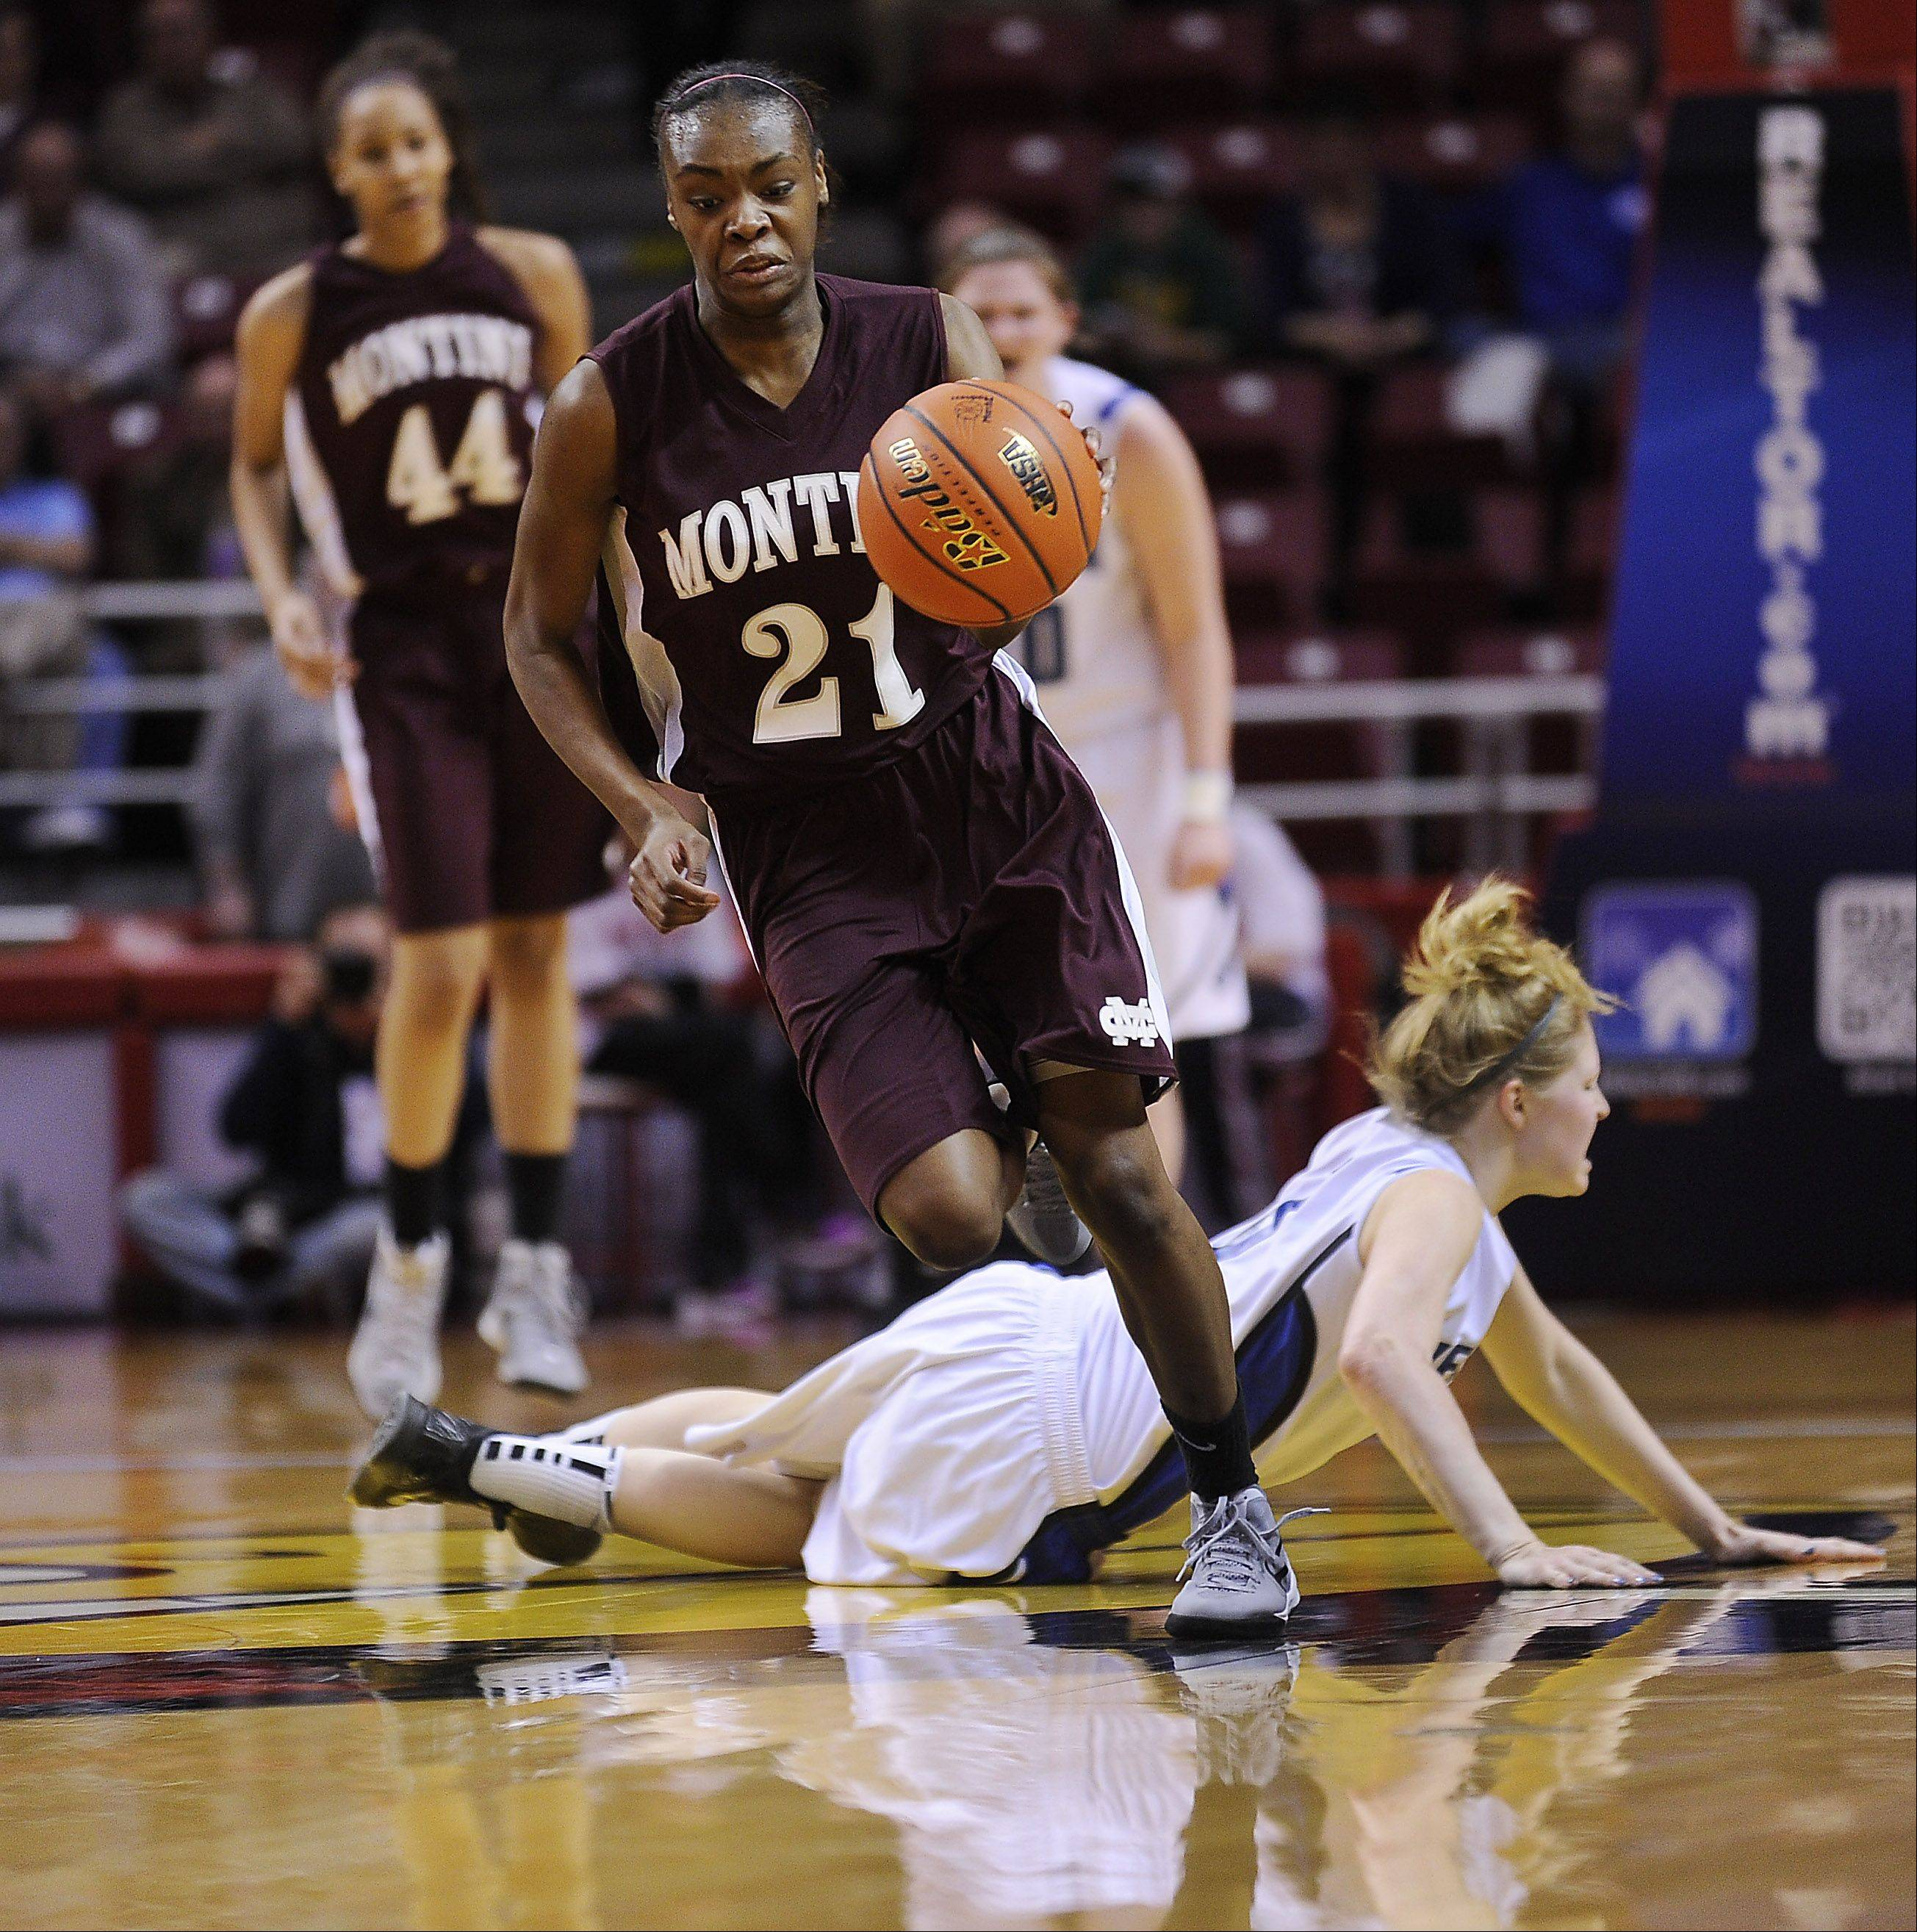 Montini's Jasmine Lumpkin plows over Vernon Hills' Sydney Smith in the first half of the 2012 IHSA Class 3A Girls basketball Tournament in Normal, Illinois on Saturday.